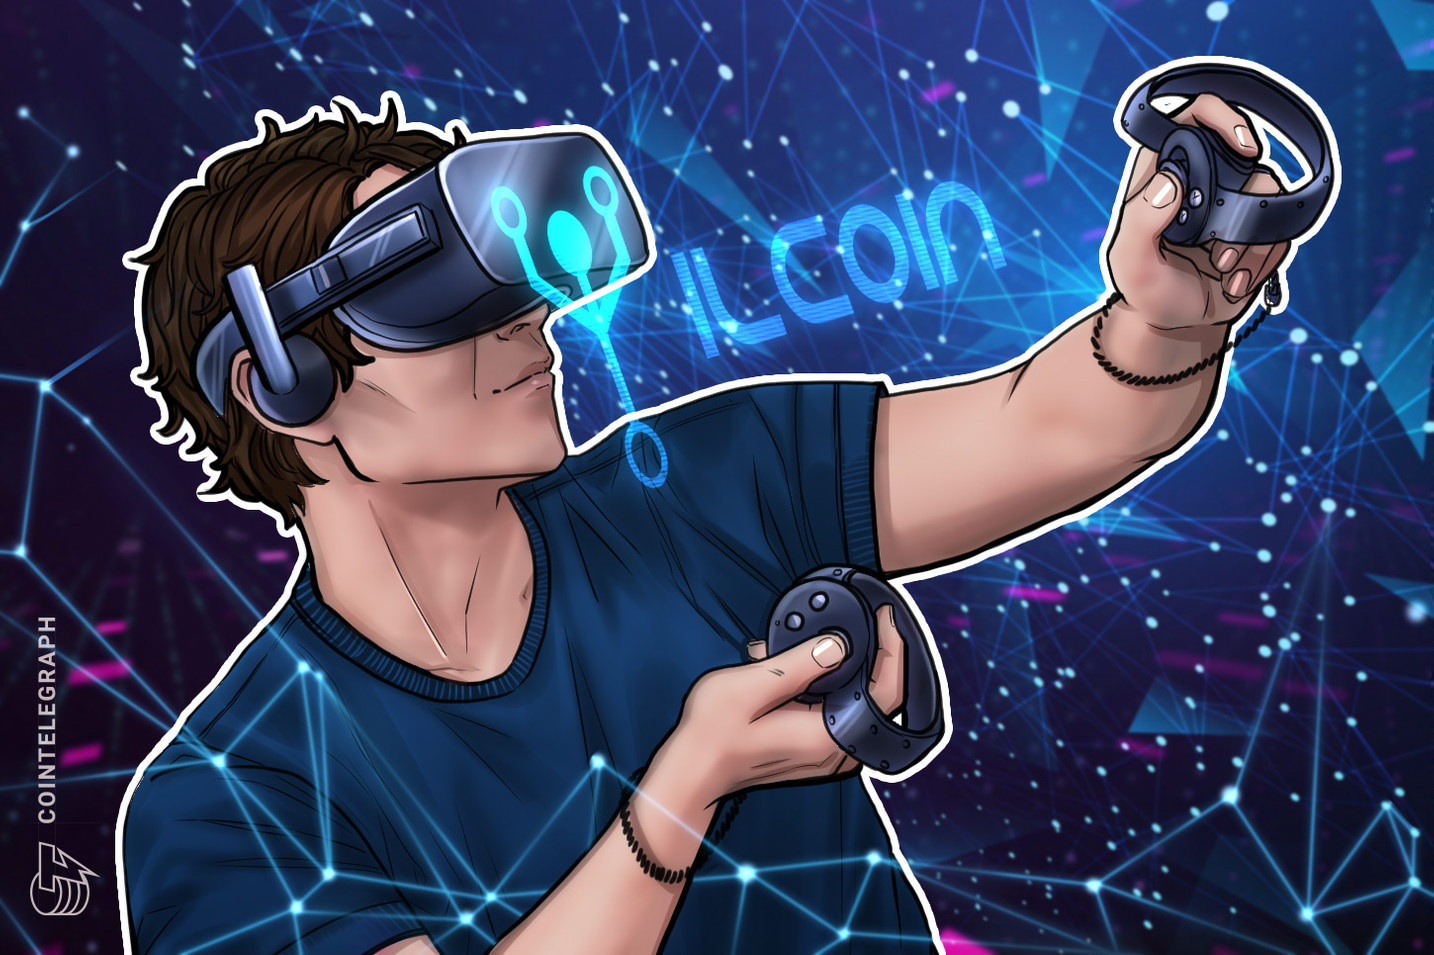 Blockchain-powered VR game hopes to win coveted Steam award